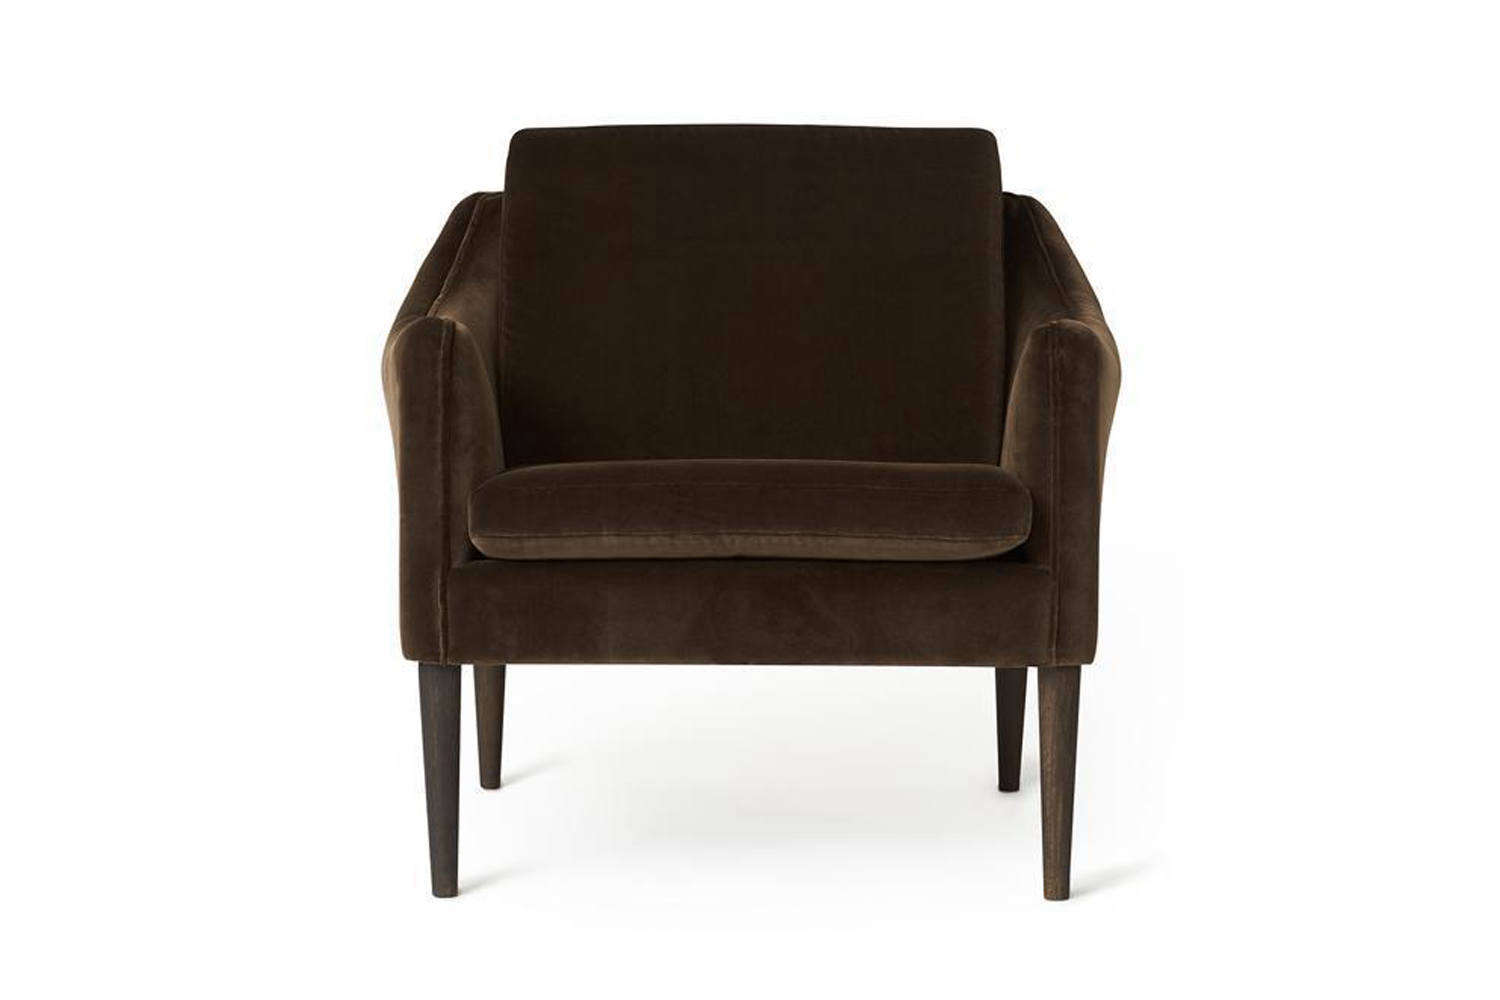 Designed by Hans Olsen for Warm Nordic, the Mr Olsen Lounge Chair comes in 8 different velvet upholstery fabrics; $3,